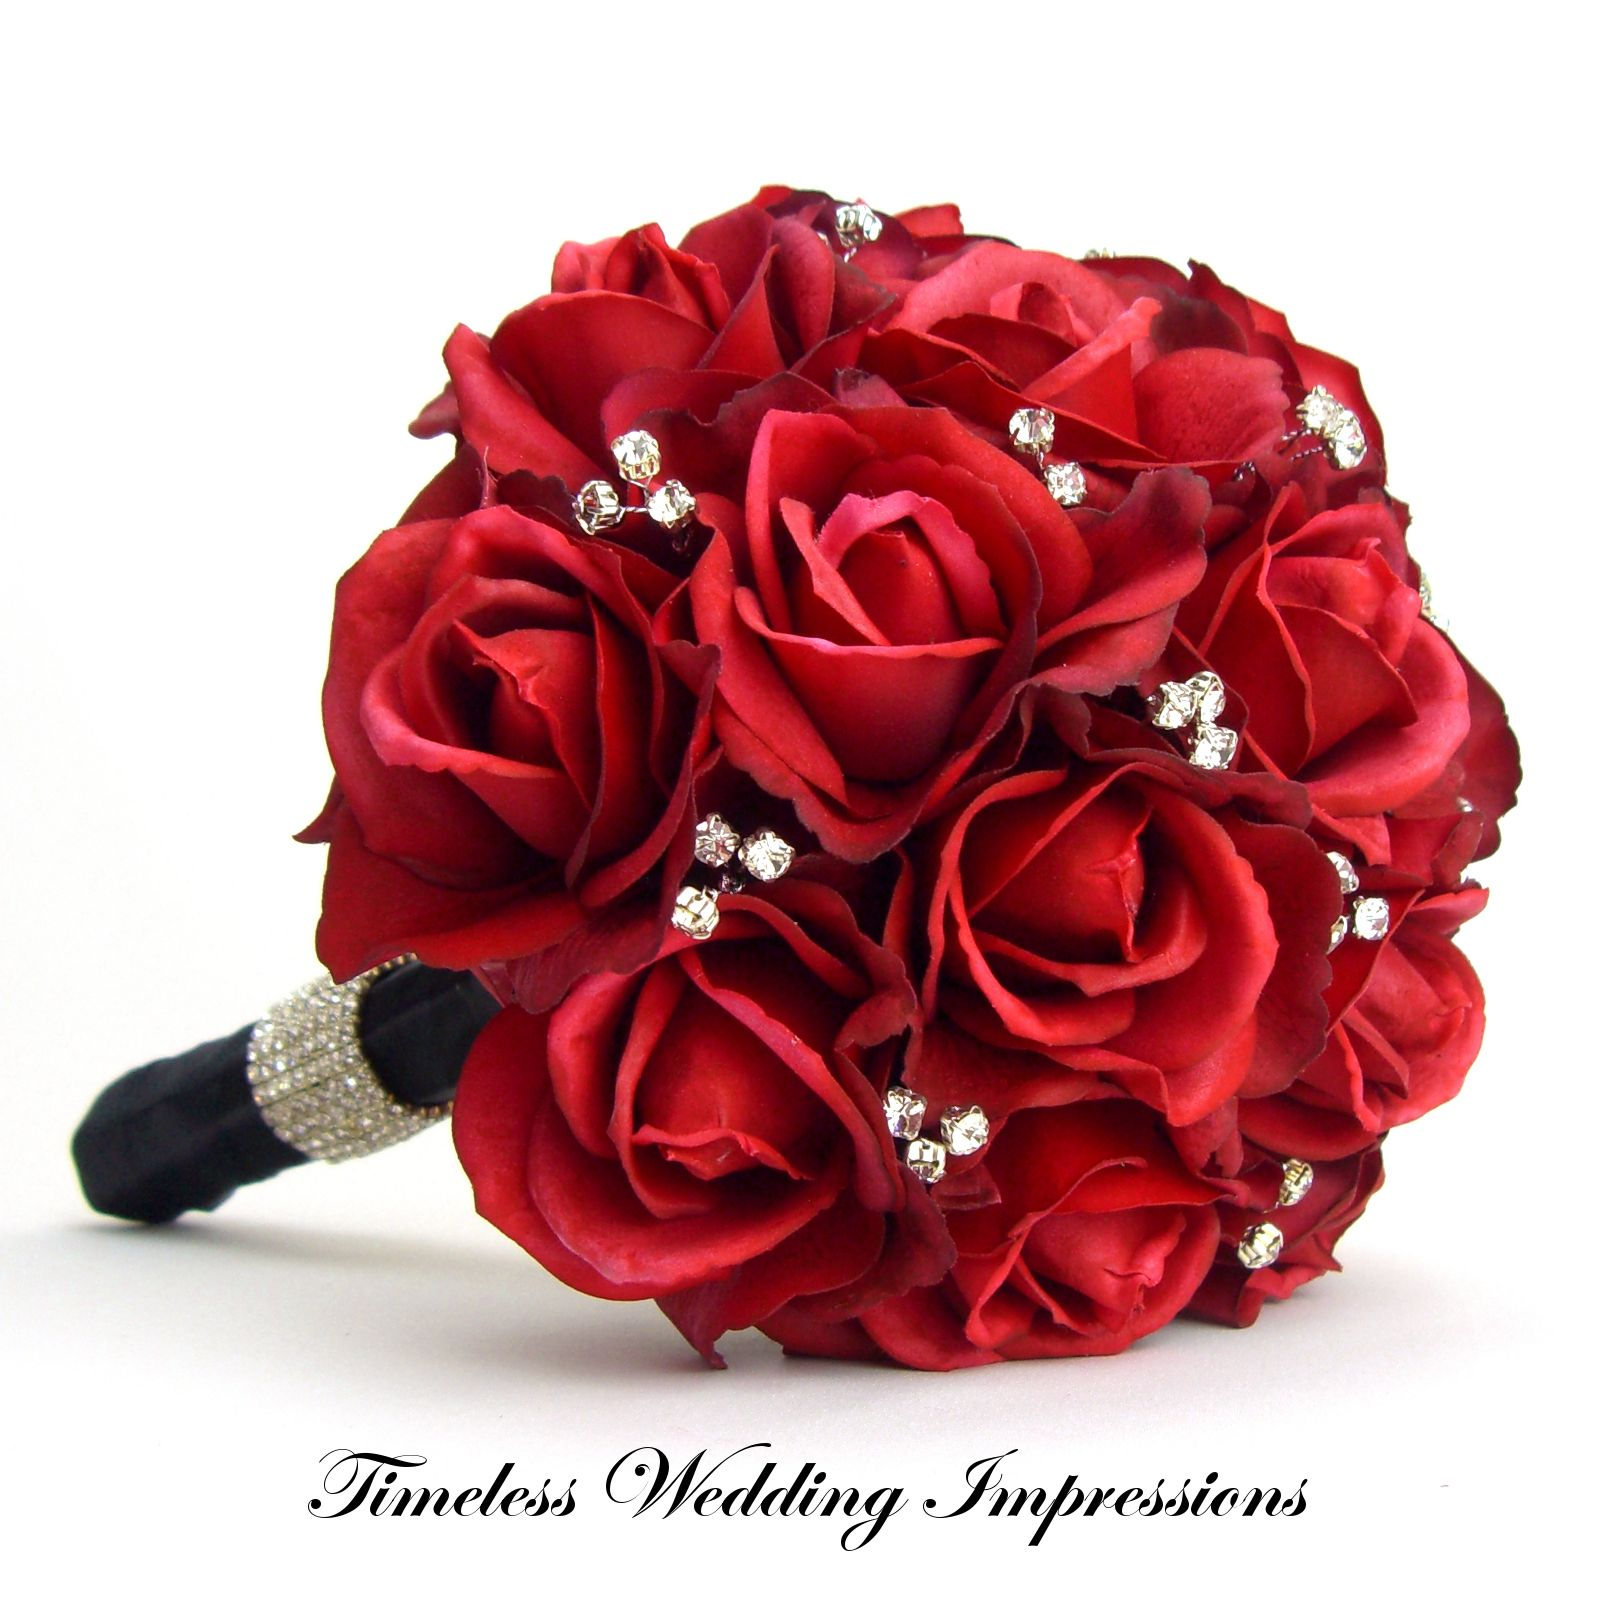 Black and red wedding flowers bridal bouquet red rose i for How to make black roses